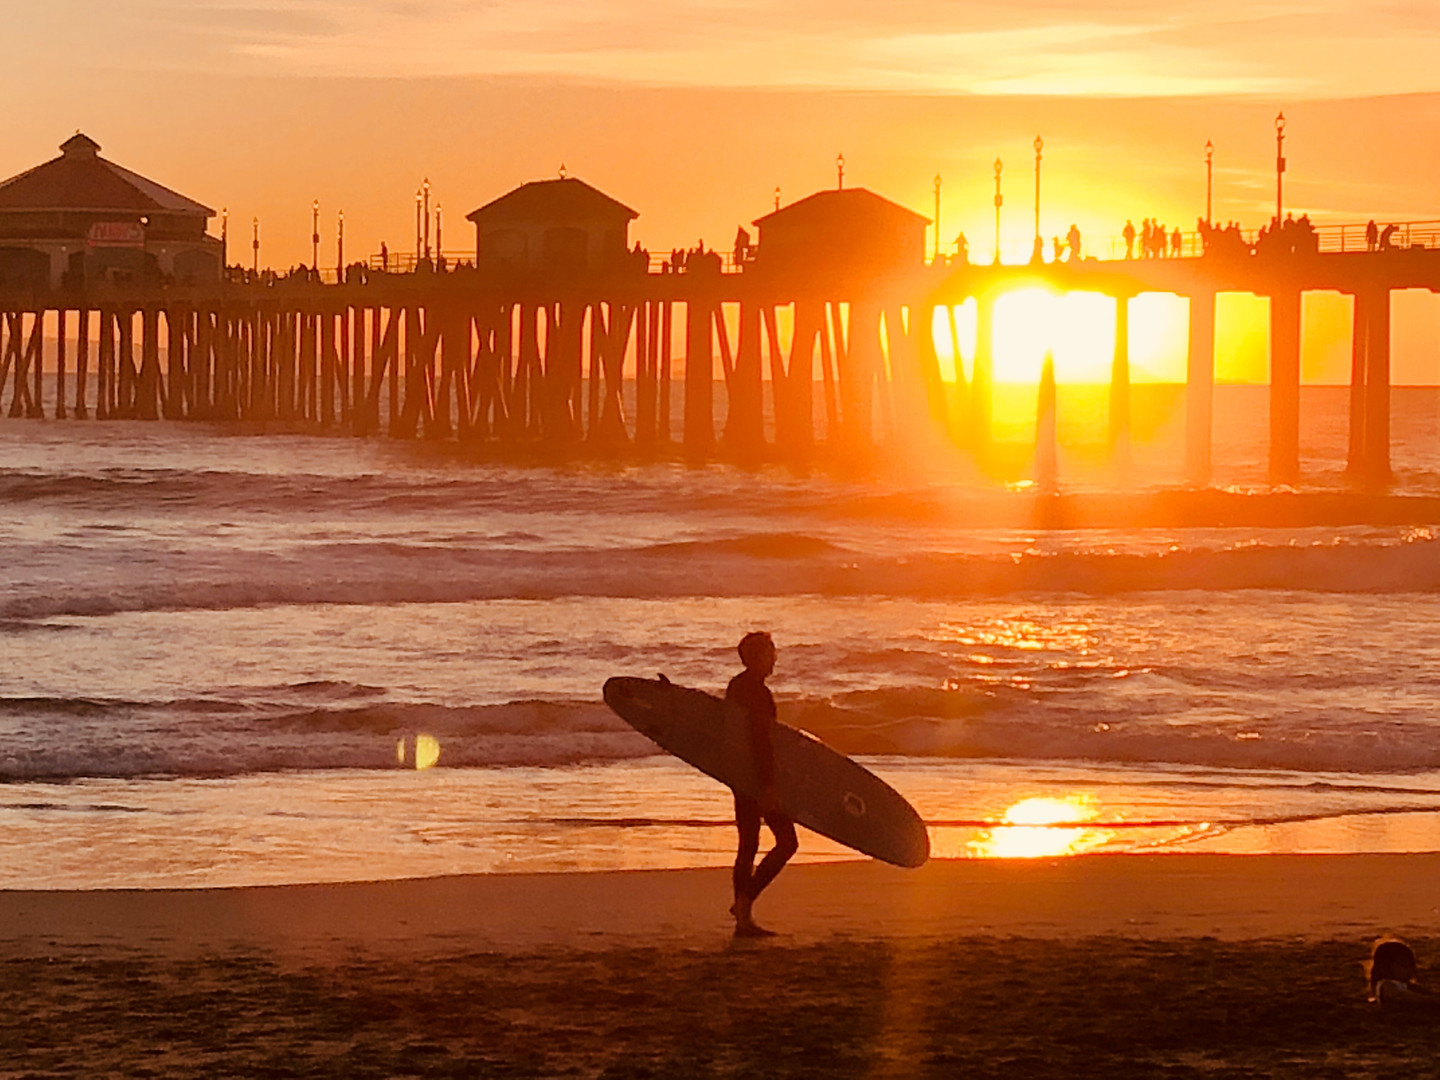 Surfer, Huntington Beach